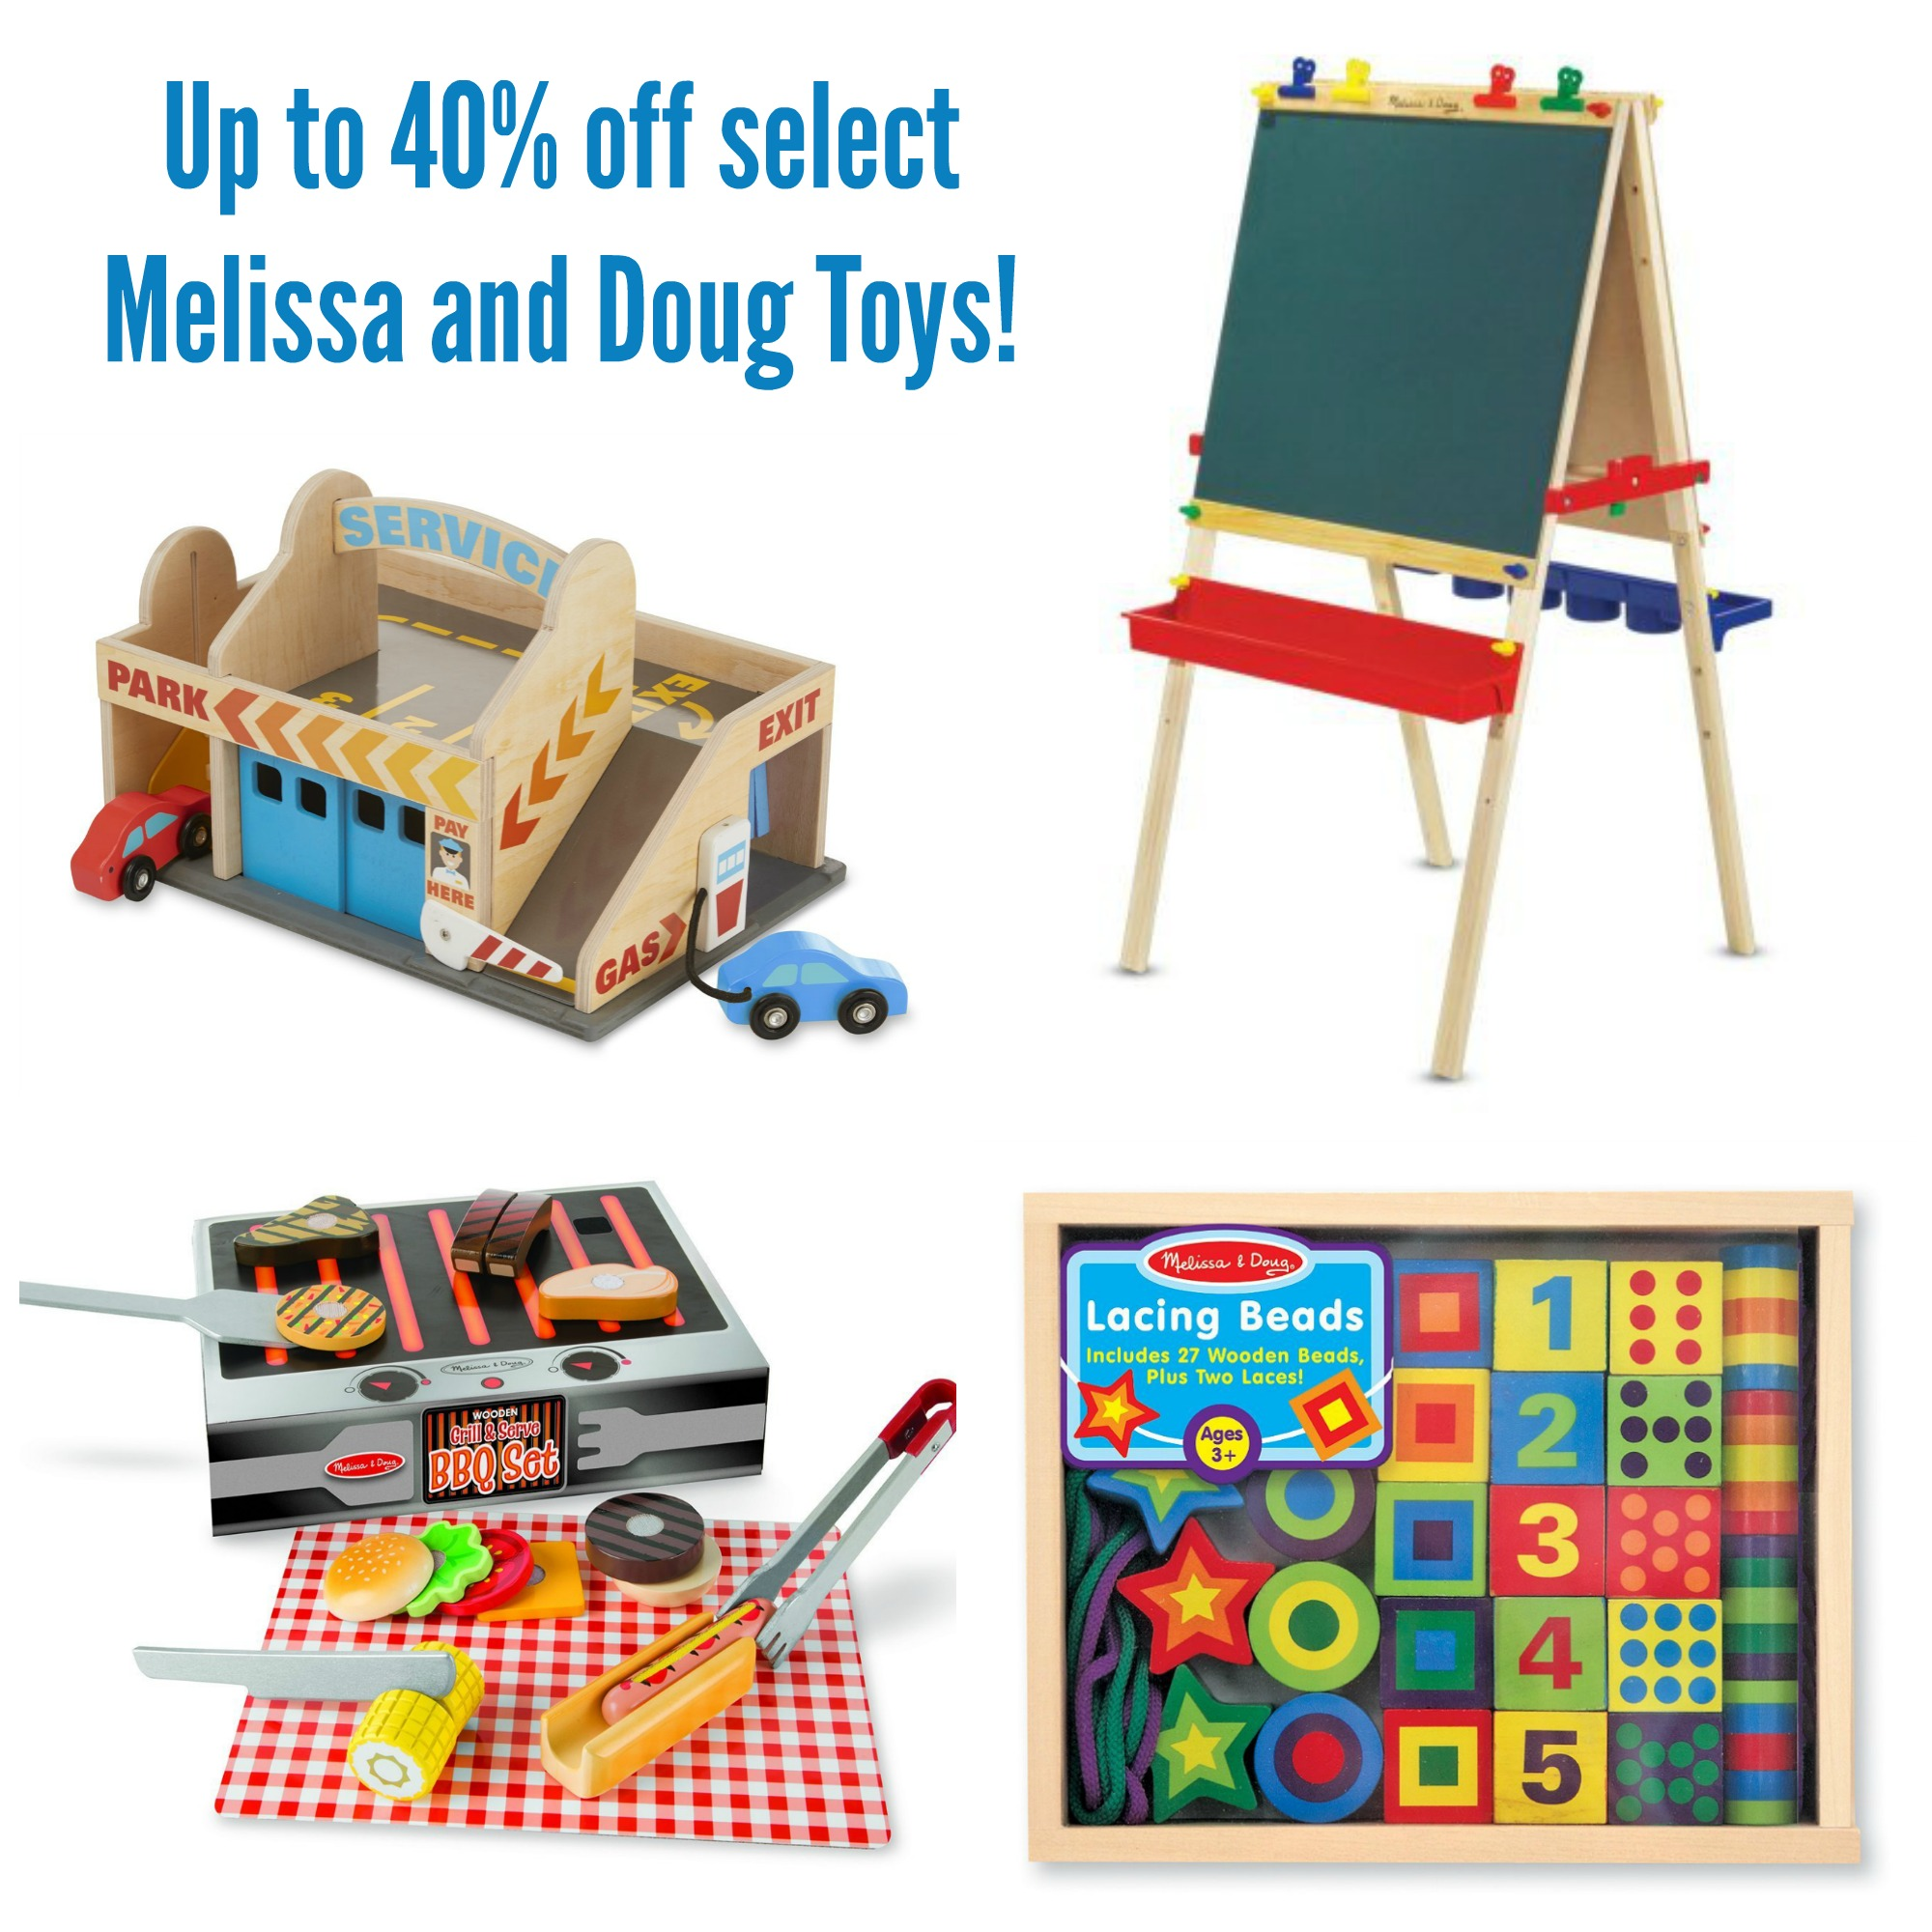 Up to 40% off Melissa and Doug Toys